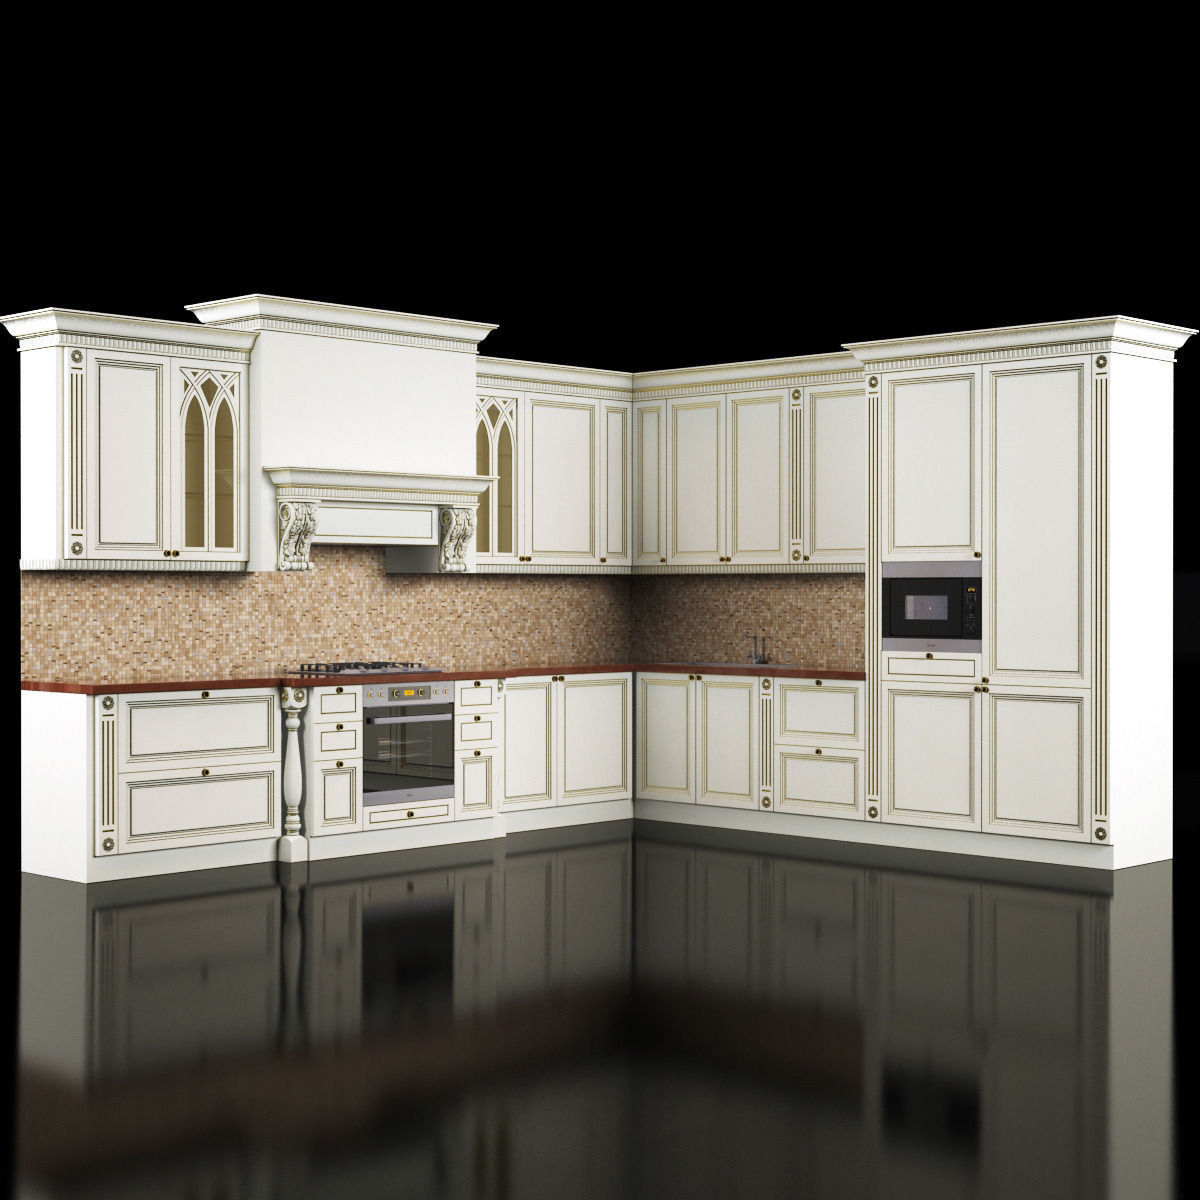 Kitchen 3d Model classic kitchen 3d model | cgtrader